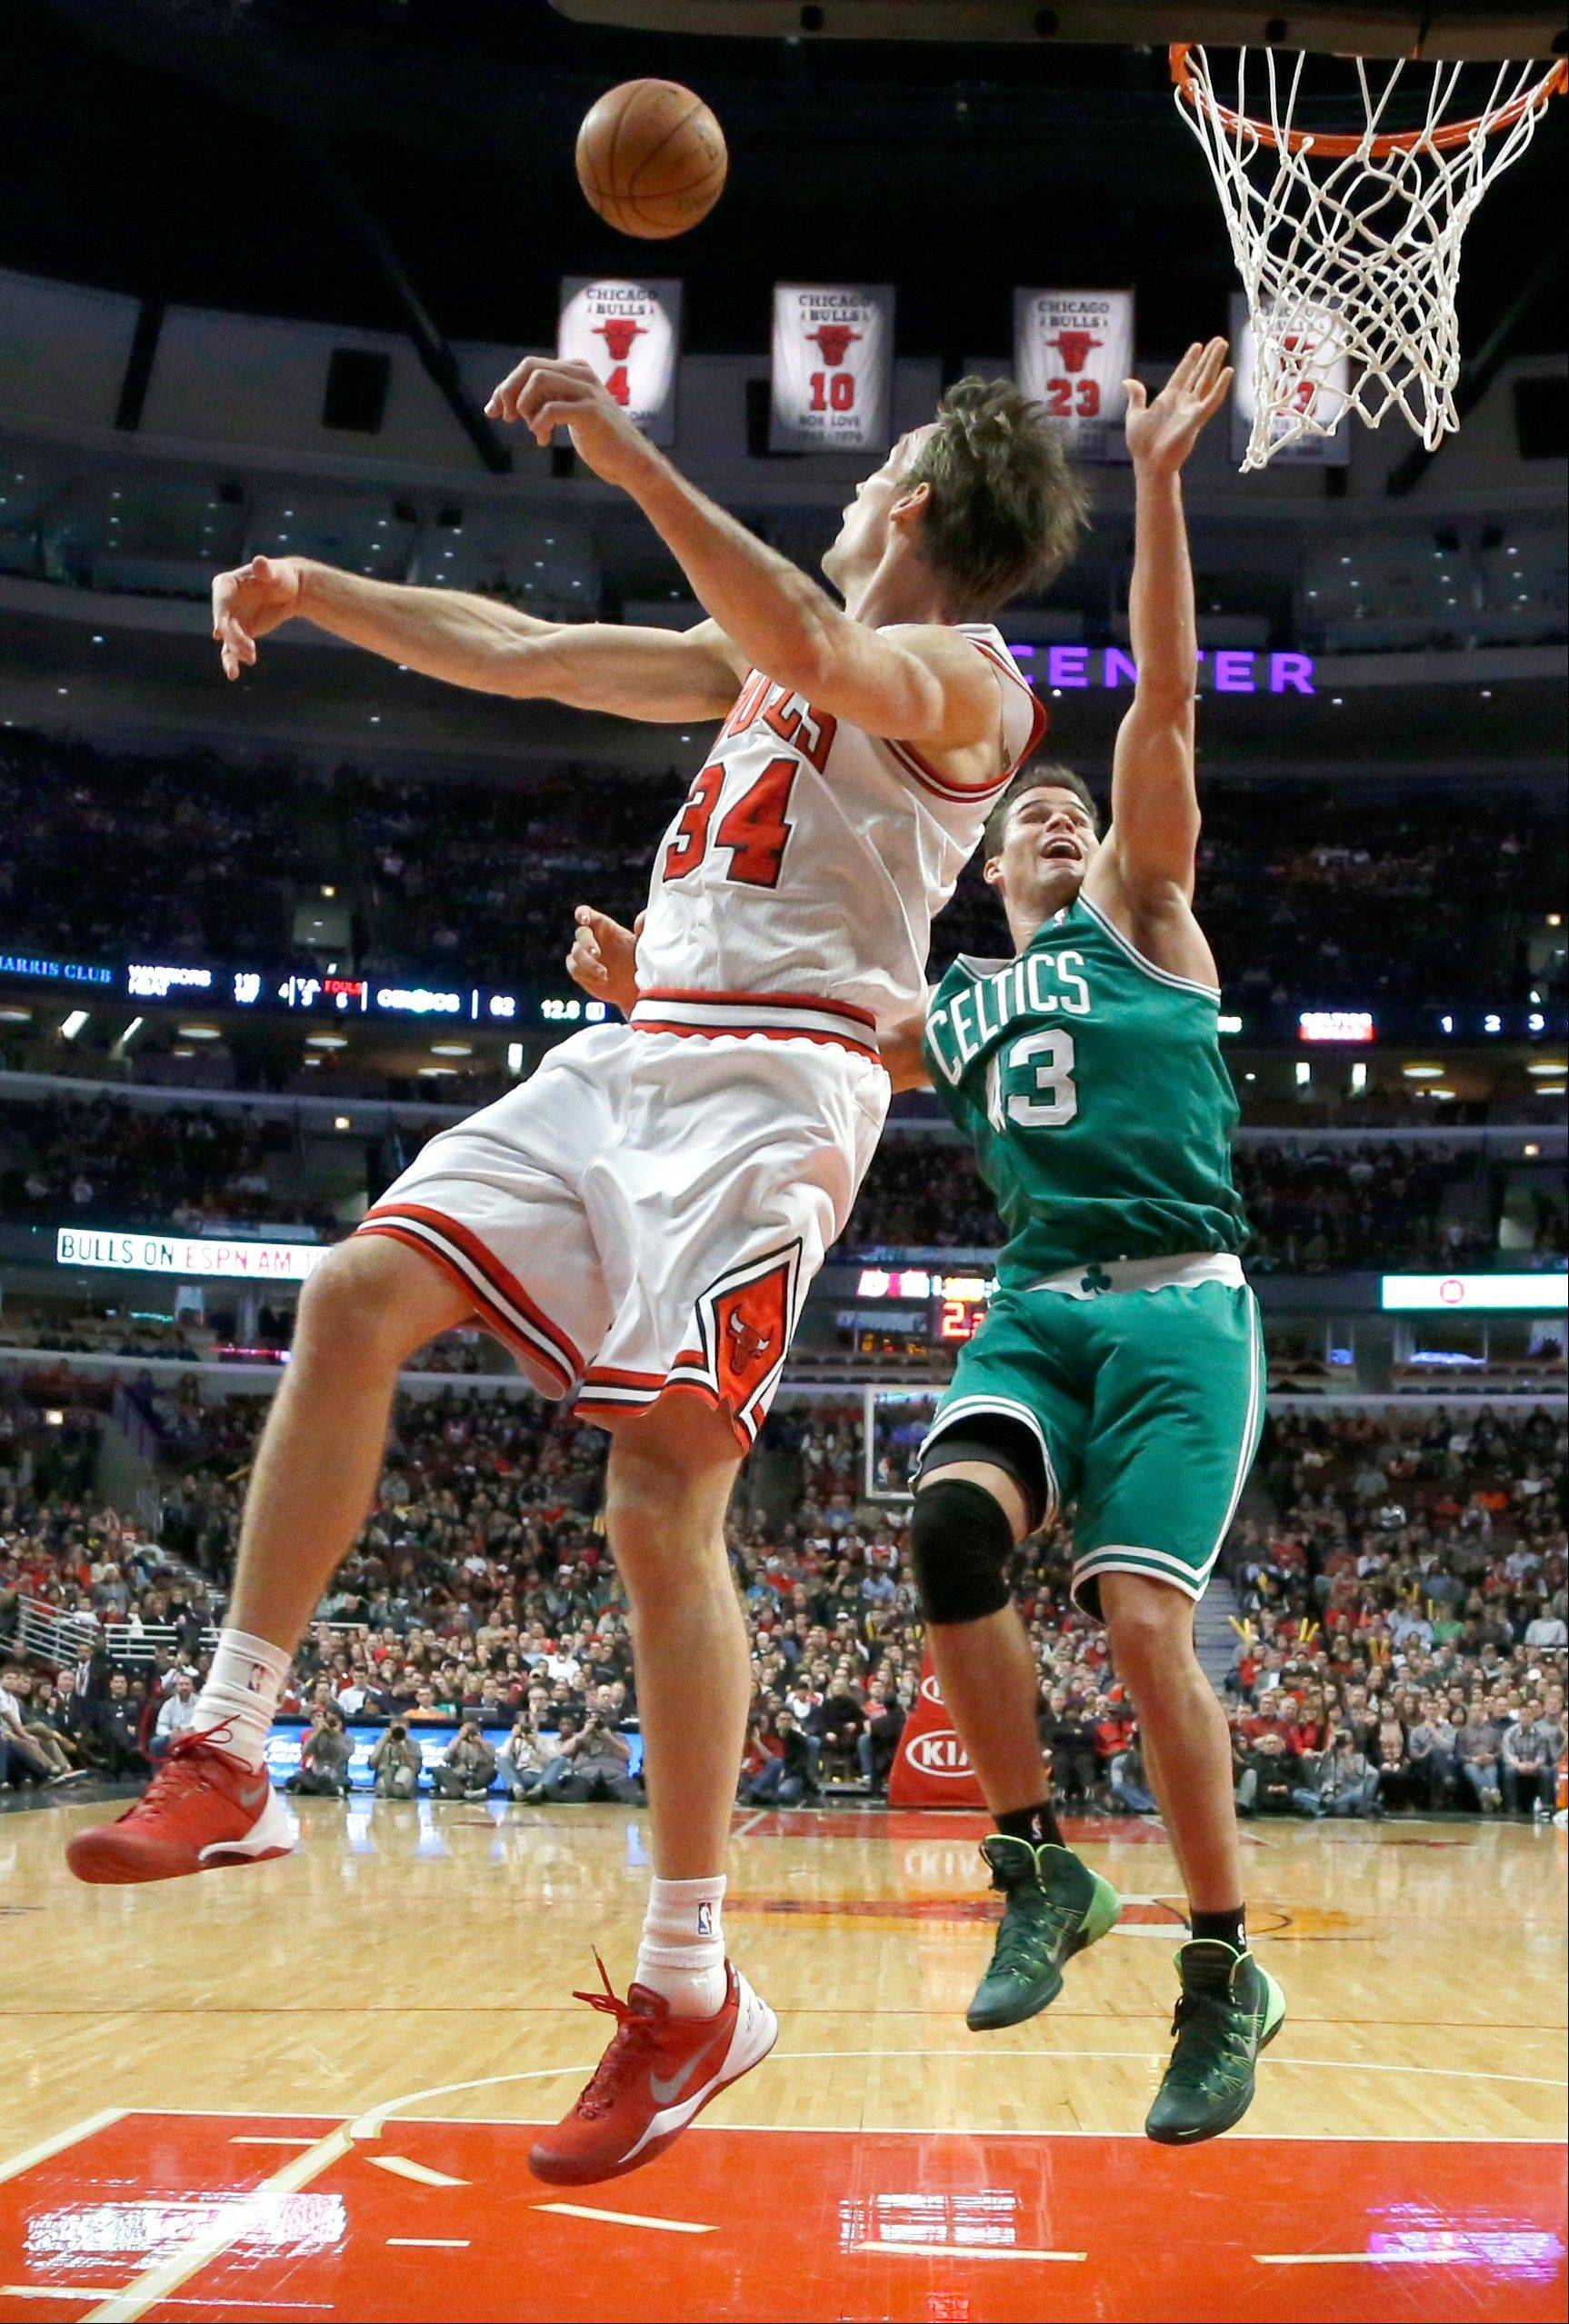 Chicago Bulls forward Mike Dunleavy (34) blocks the shot of Boston Celtics forward Kris Humphries (43) during the second half of an NBA basketball game on Thursday, Jan. 2, 2014, in Chicago. The Bulls won 94-82. (AP Photo/Charles Rex Arbogast)